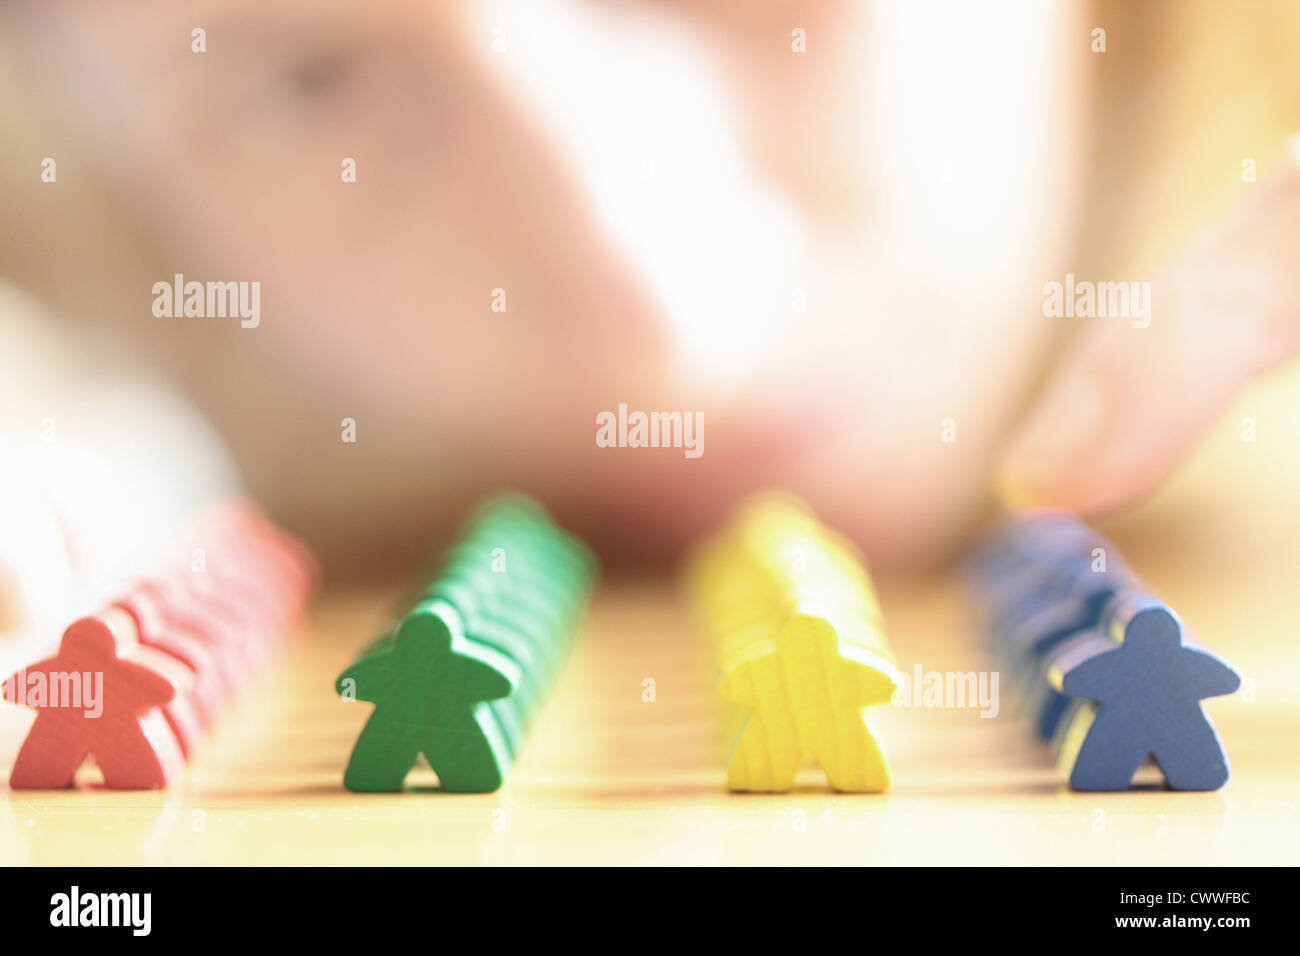 Close up of colorful wooden blocks - Stock Image